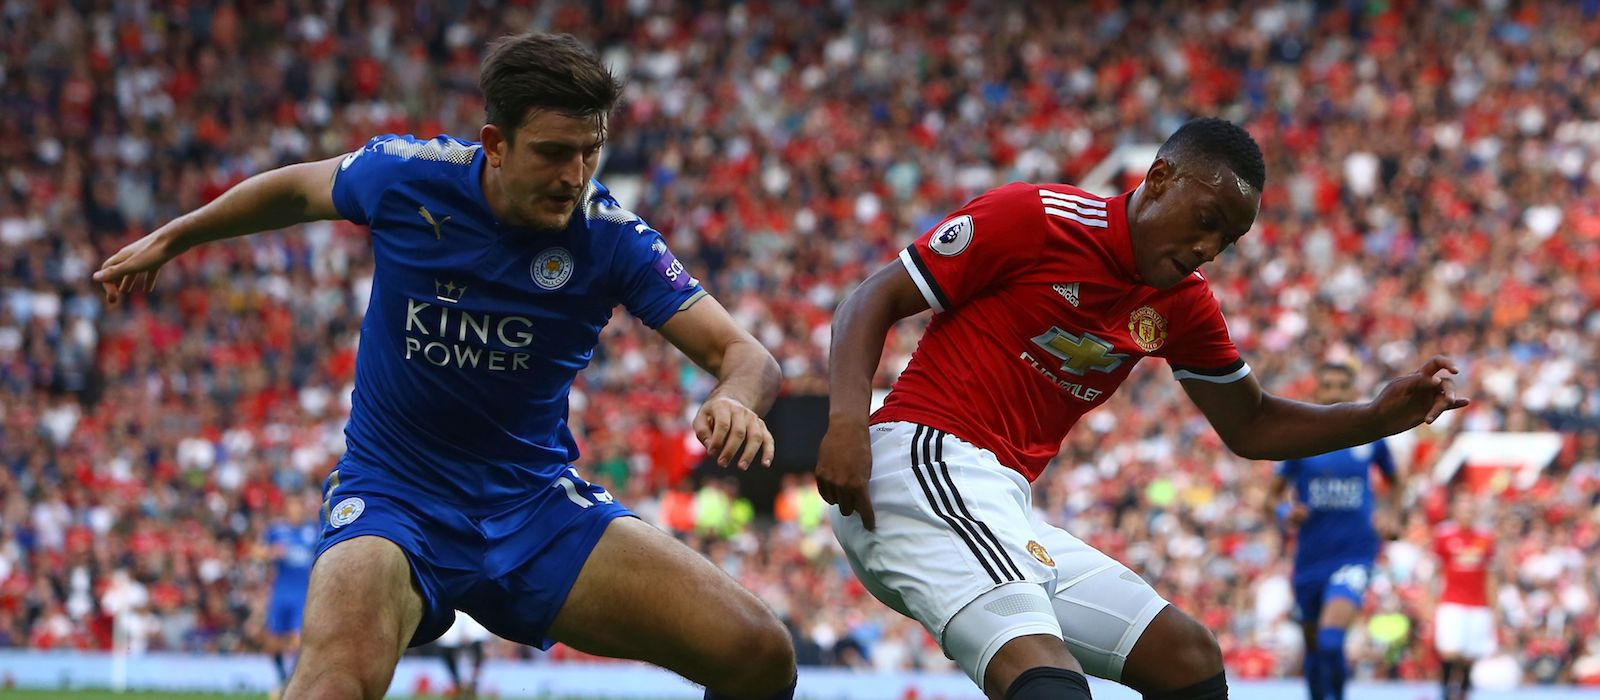 Manchester United willing to break world-record fee for Harry Maguire – report